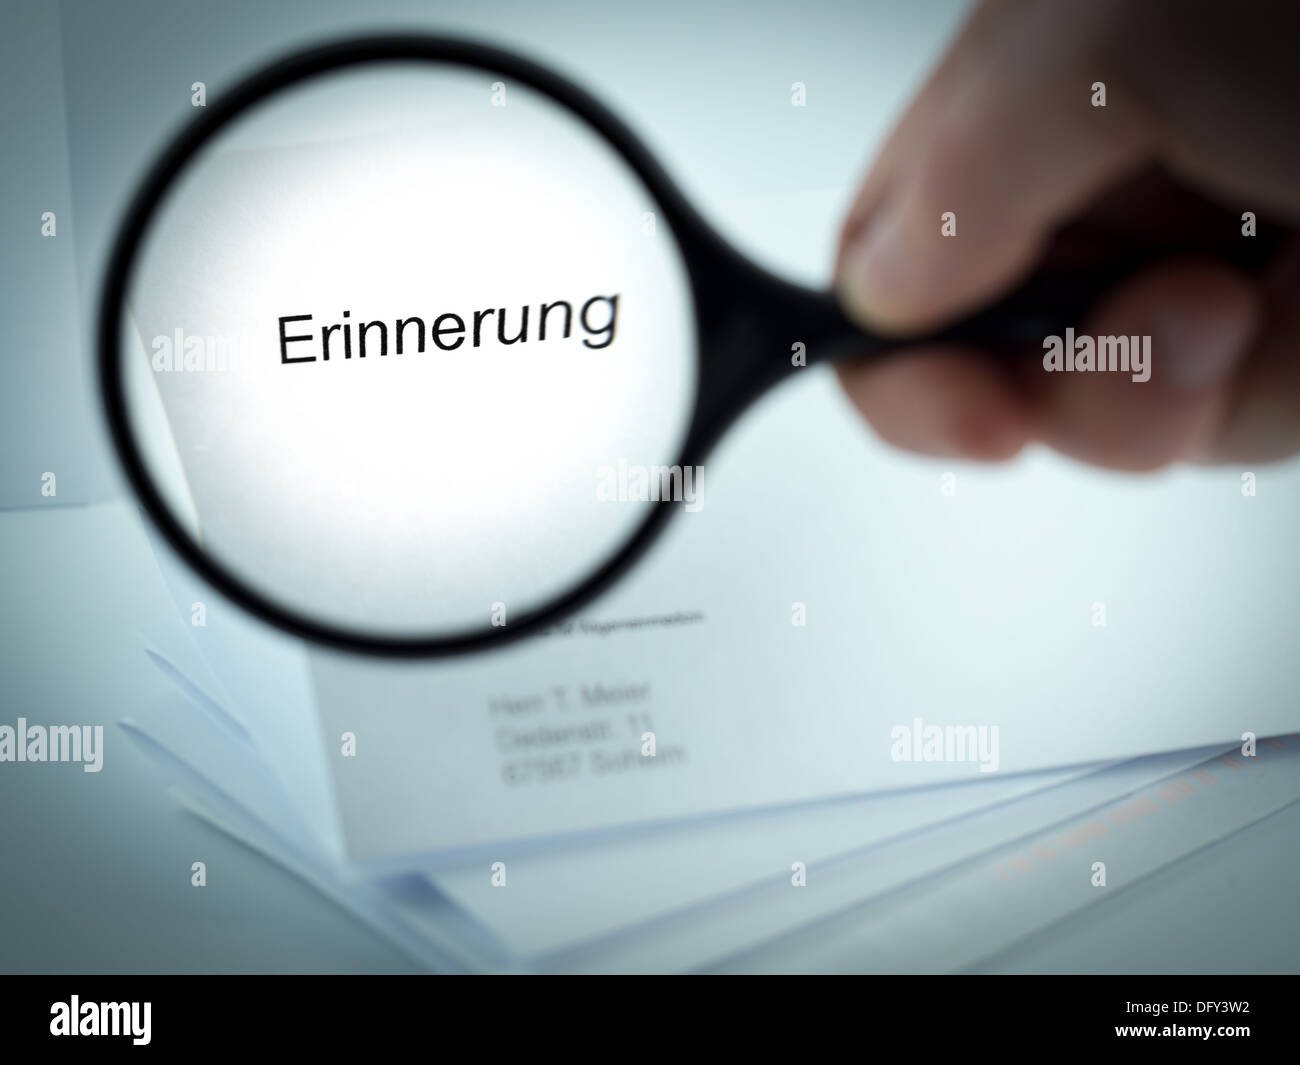 Cover letter with the word Erinnerung in the letterhead - Stock Image